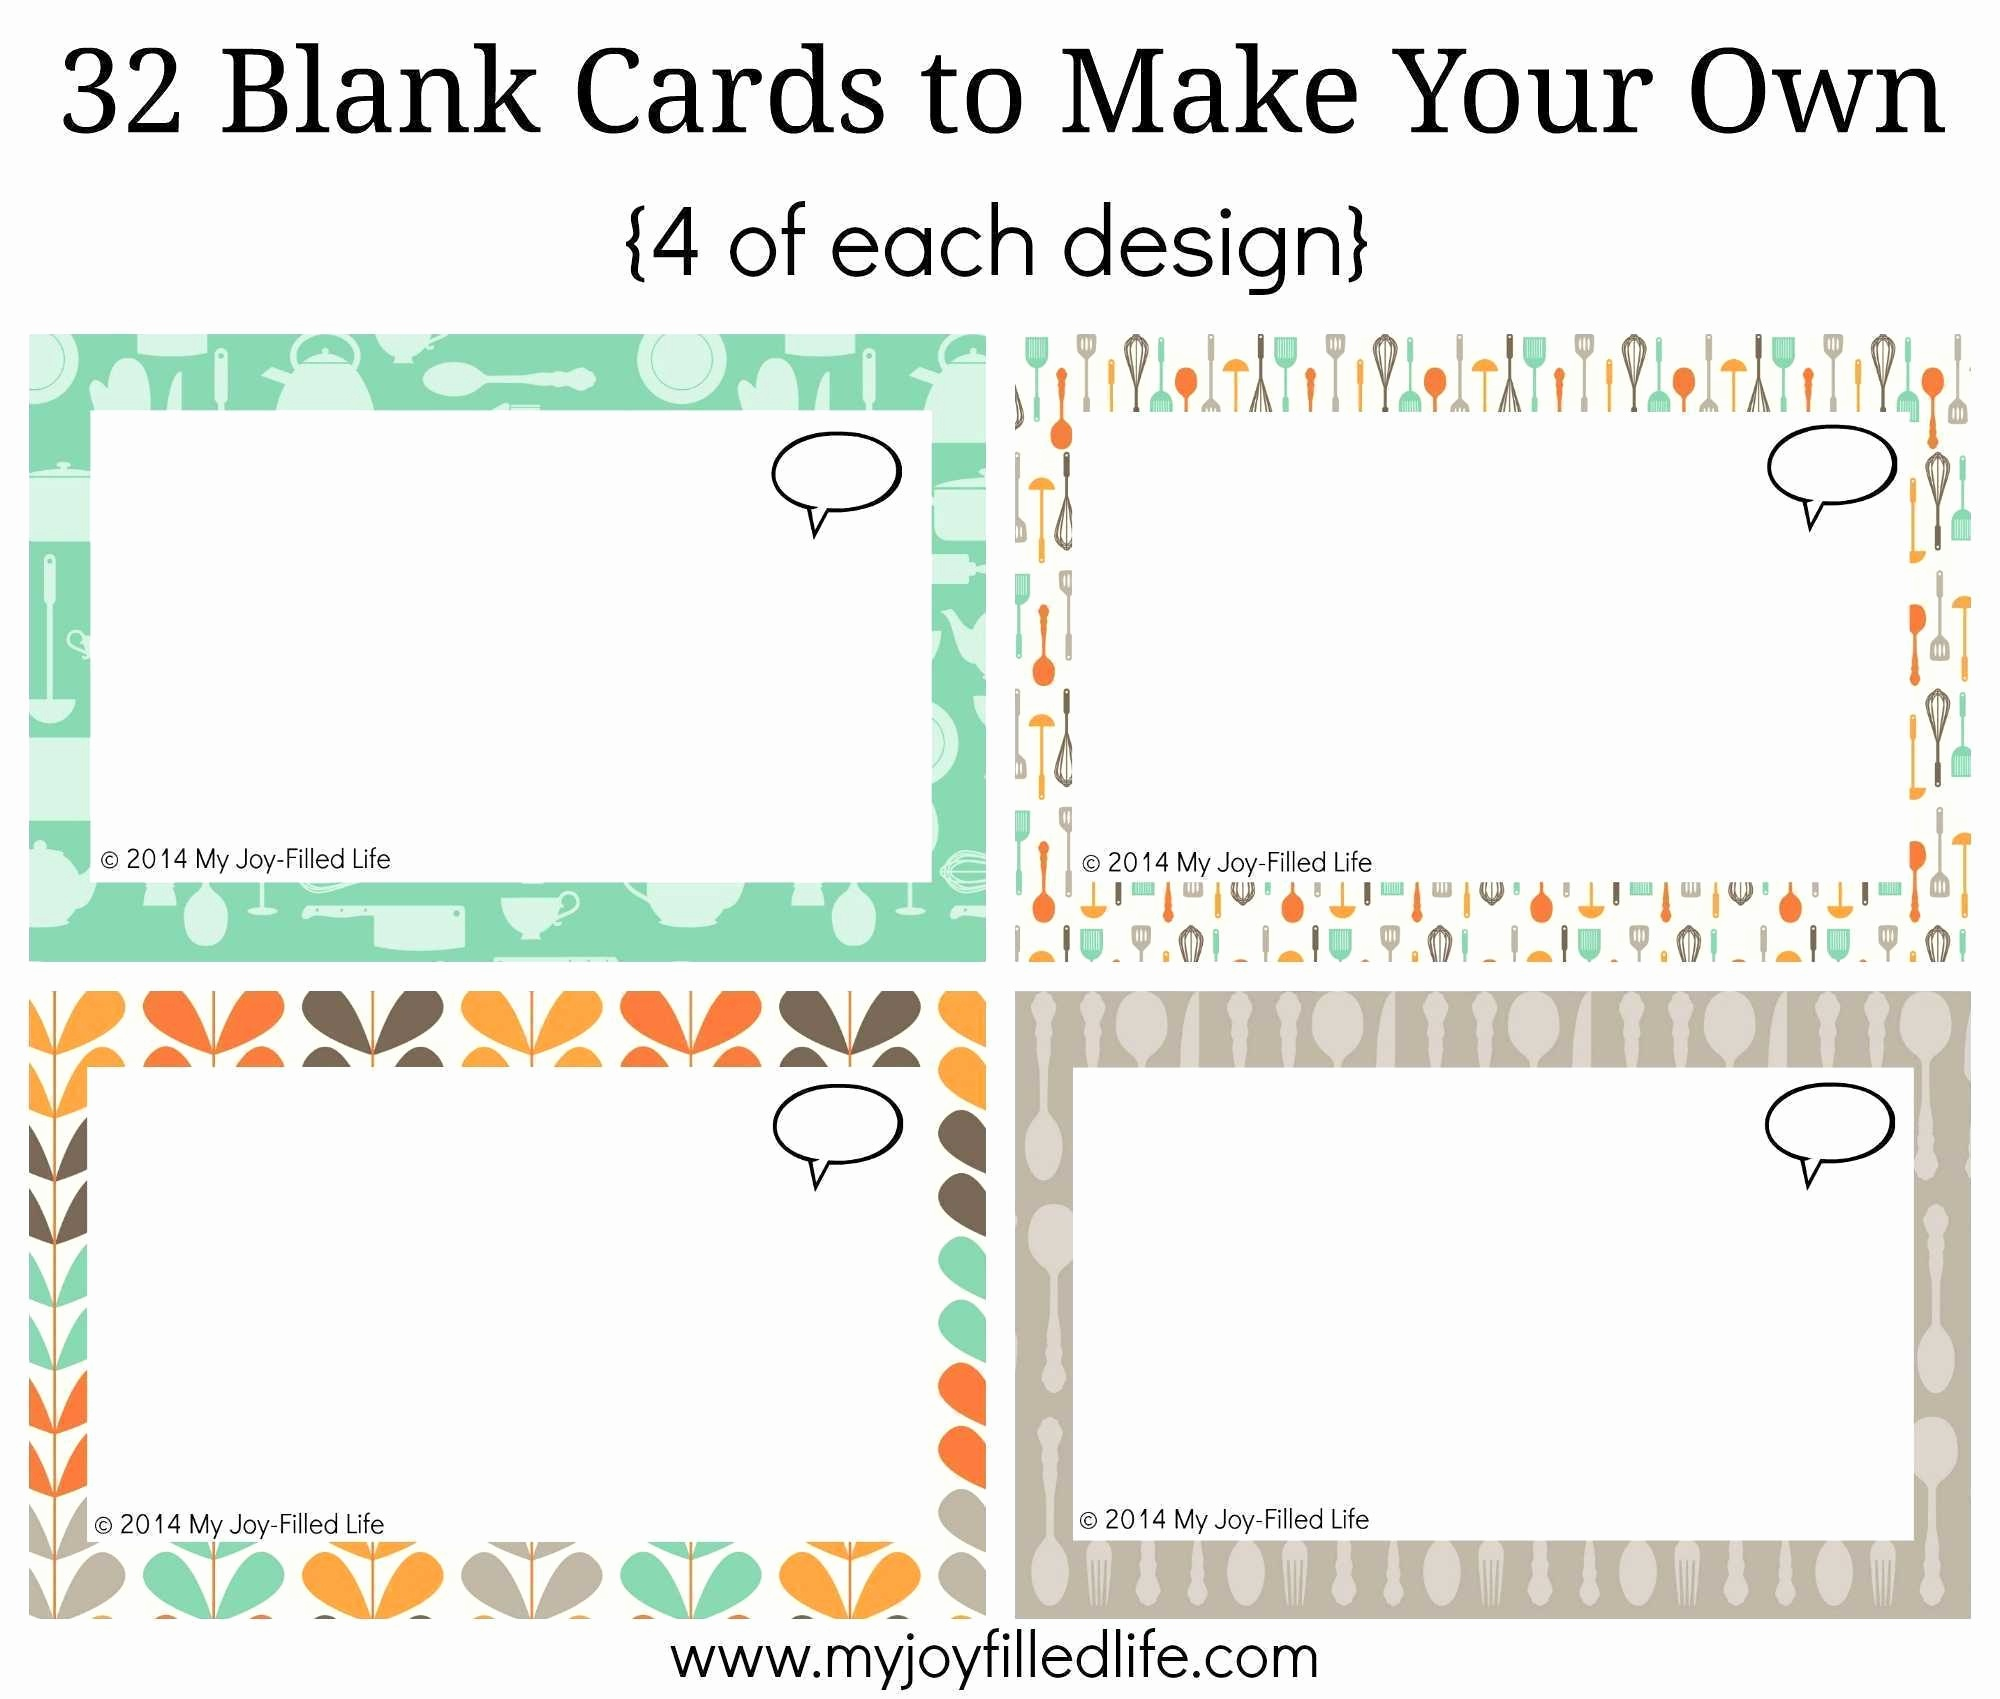 20 Make Free Business Cards Online Printable – Guiaubuntupt - Make Your Own Card Online Free Printable